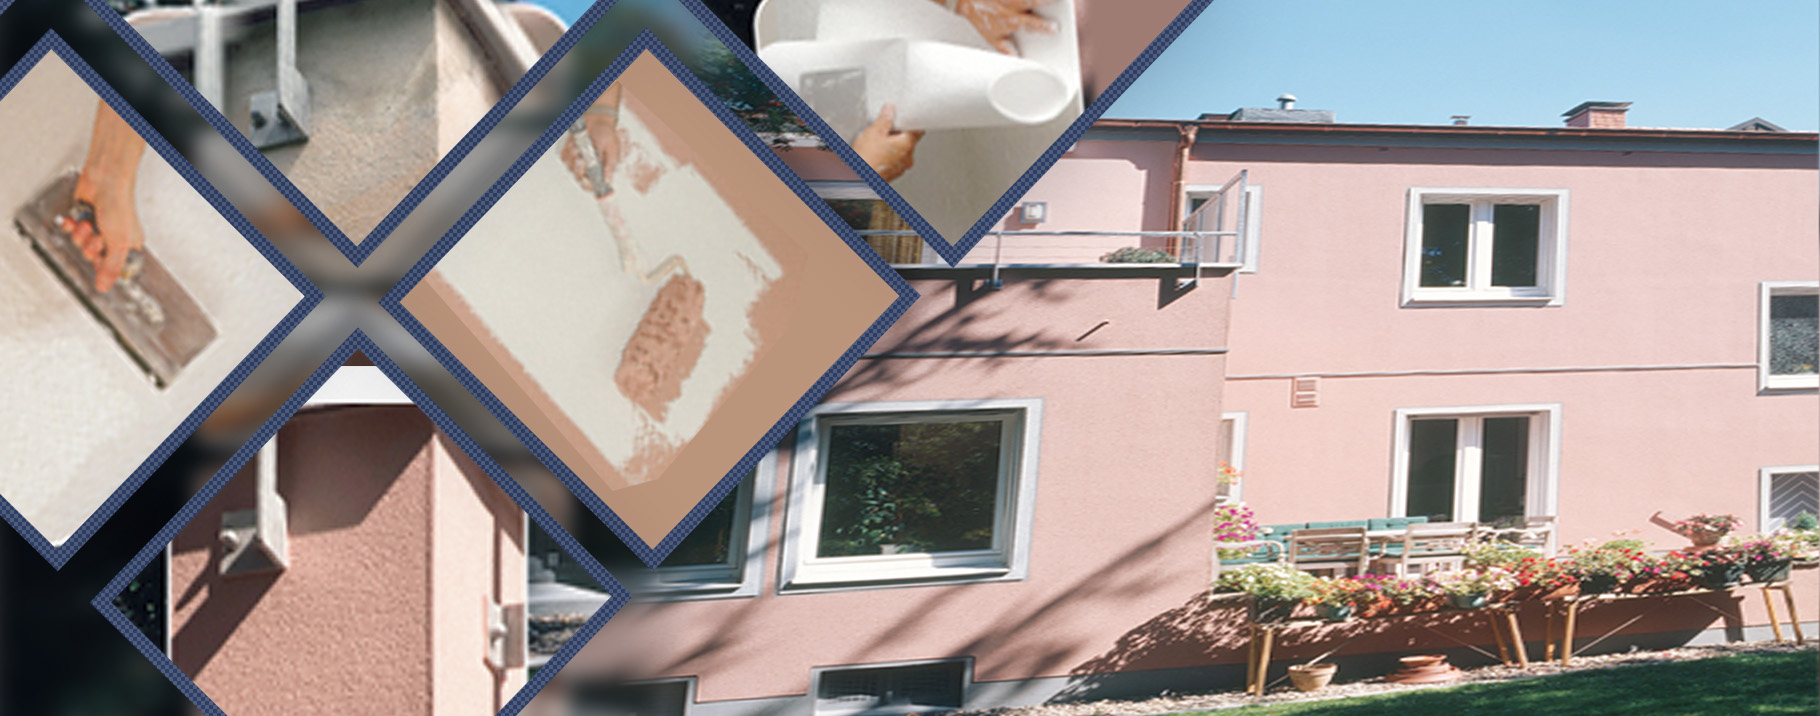 -Erfurt Exterior Covering for prevention of exterior cracks. Easy and fast application.